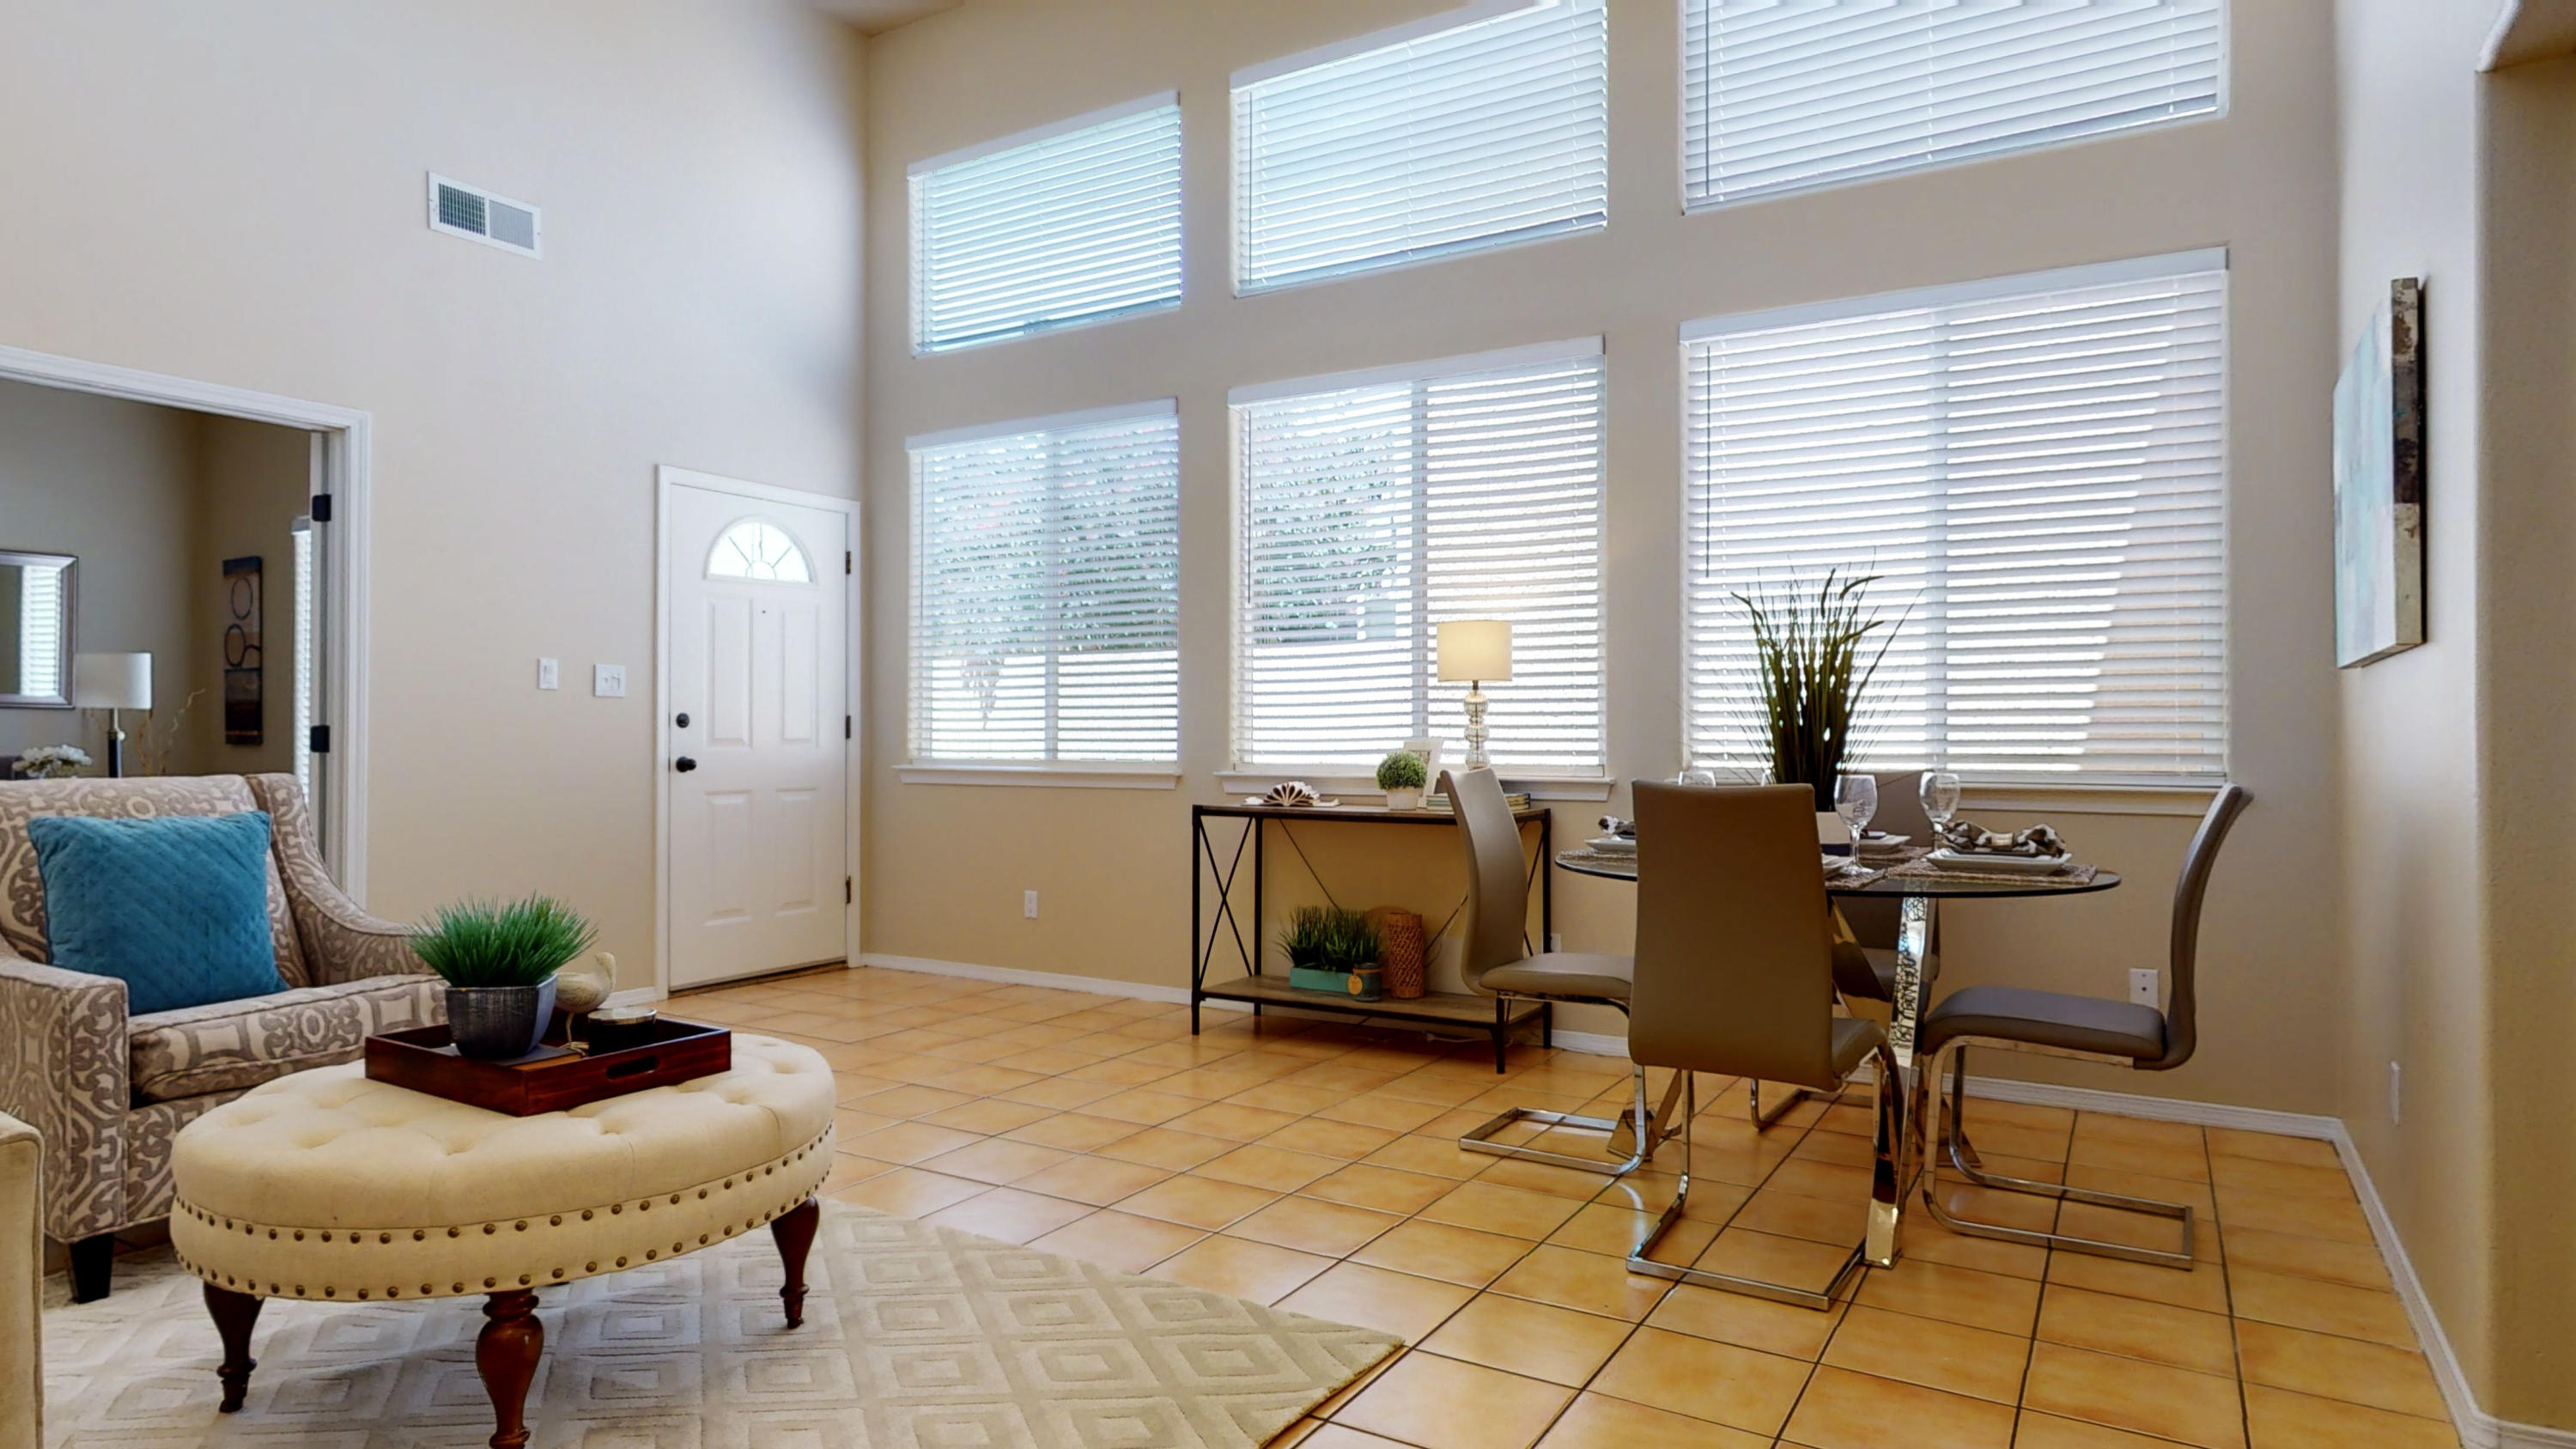 Multiple Strong Offers Received - Submit Highest and Best. Rare find, lovely single story townhome, private and secure, move in ready, 3 good sized bedrooms, soaring ceilings, clerestory windows, tile & laminate flooring throughout. Owner's suite has sitting area and sliding glass door to private grassy backyard oasis with shade and mature landscaping. Brand new heating / cooling combo unit. Stunning French white framed doors on bedroom #3 could also be an office, exercise or 2nd living area. Coveted neighborhood and location! Shops and services abound nearby.